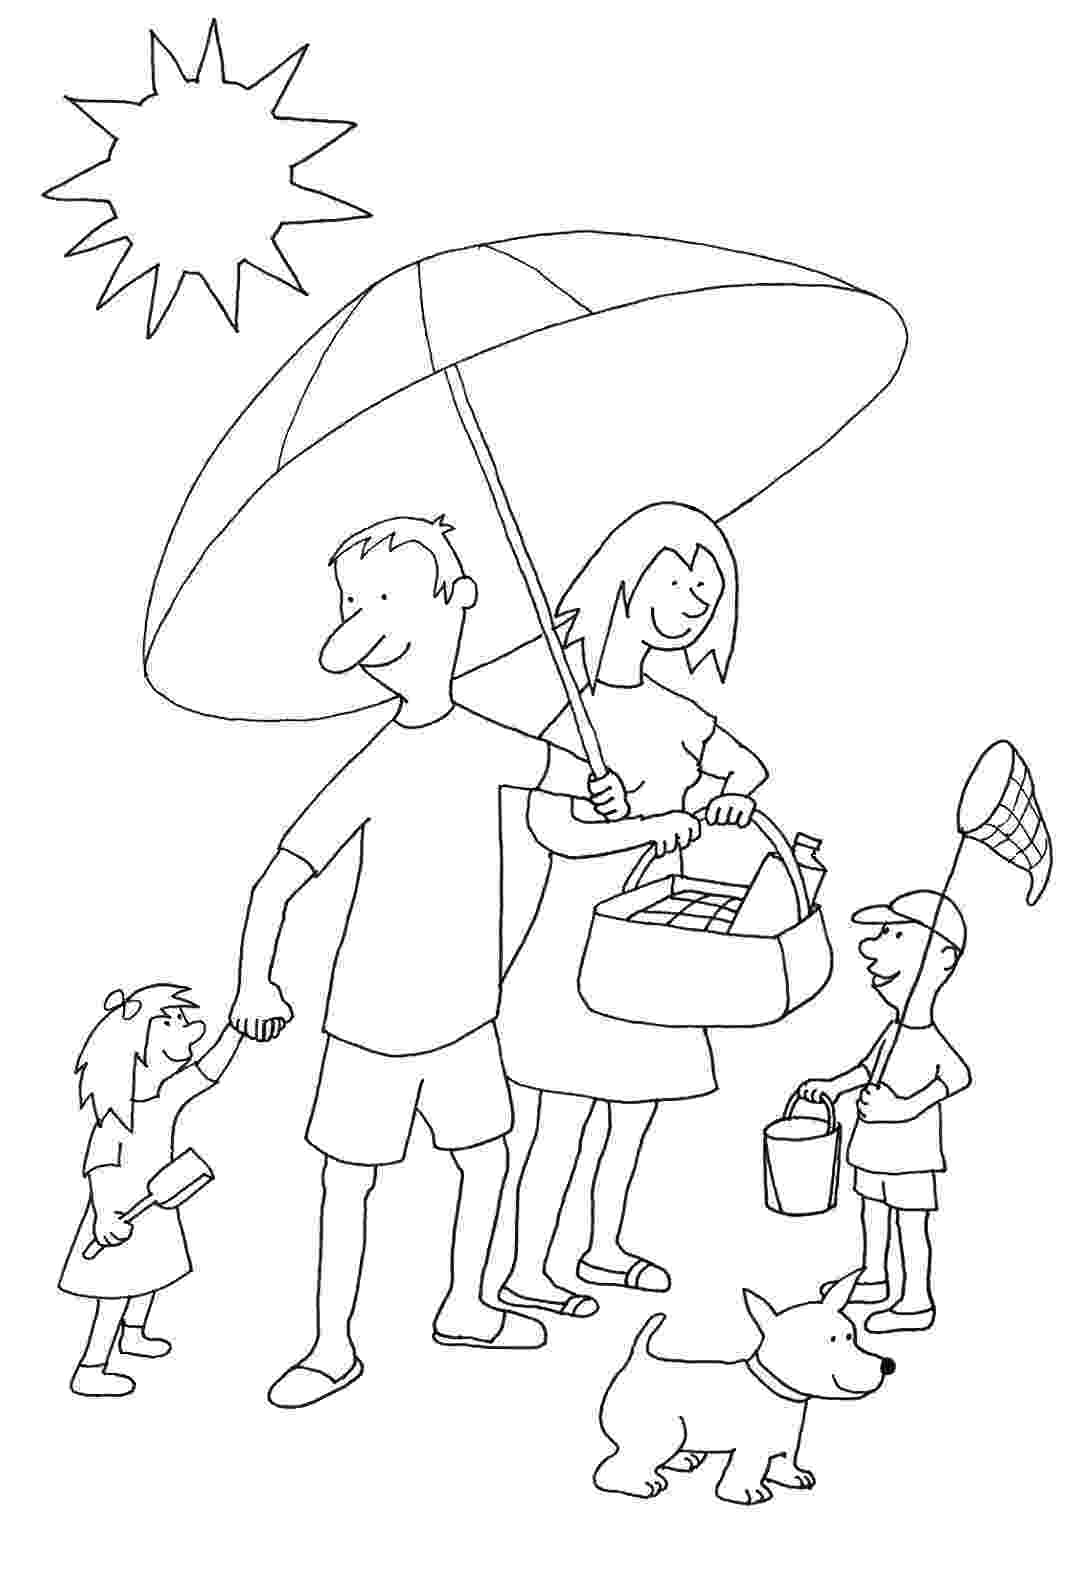 beach coloring page beach scene coloring pages coloring home beach page coloring